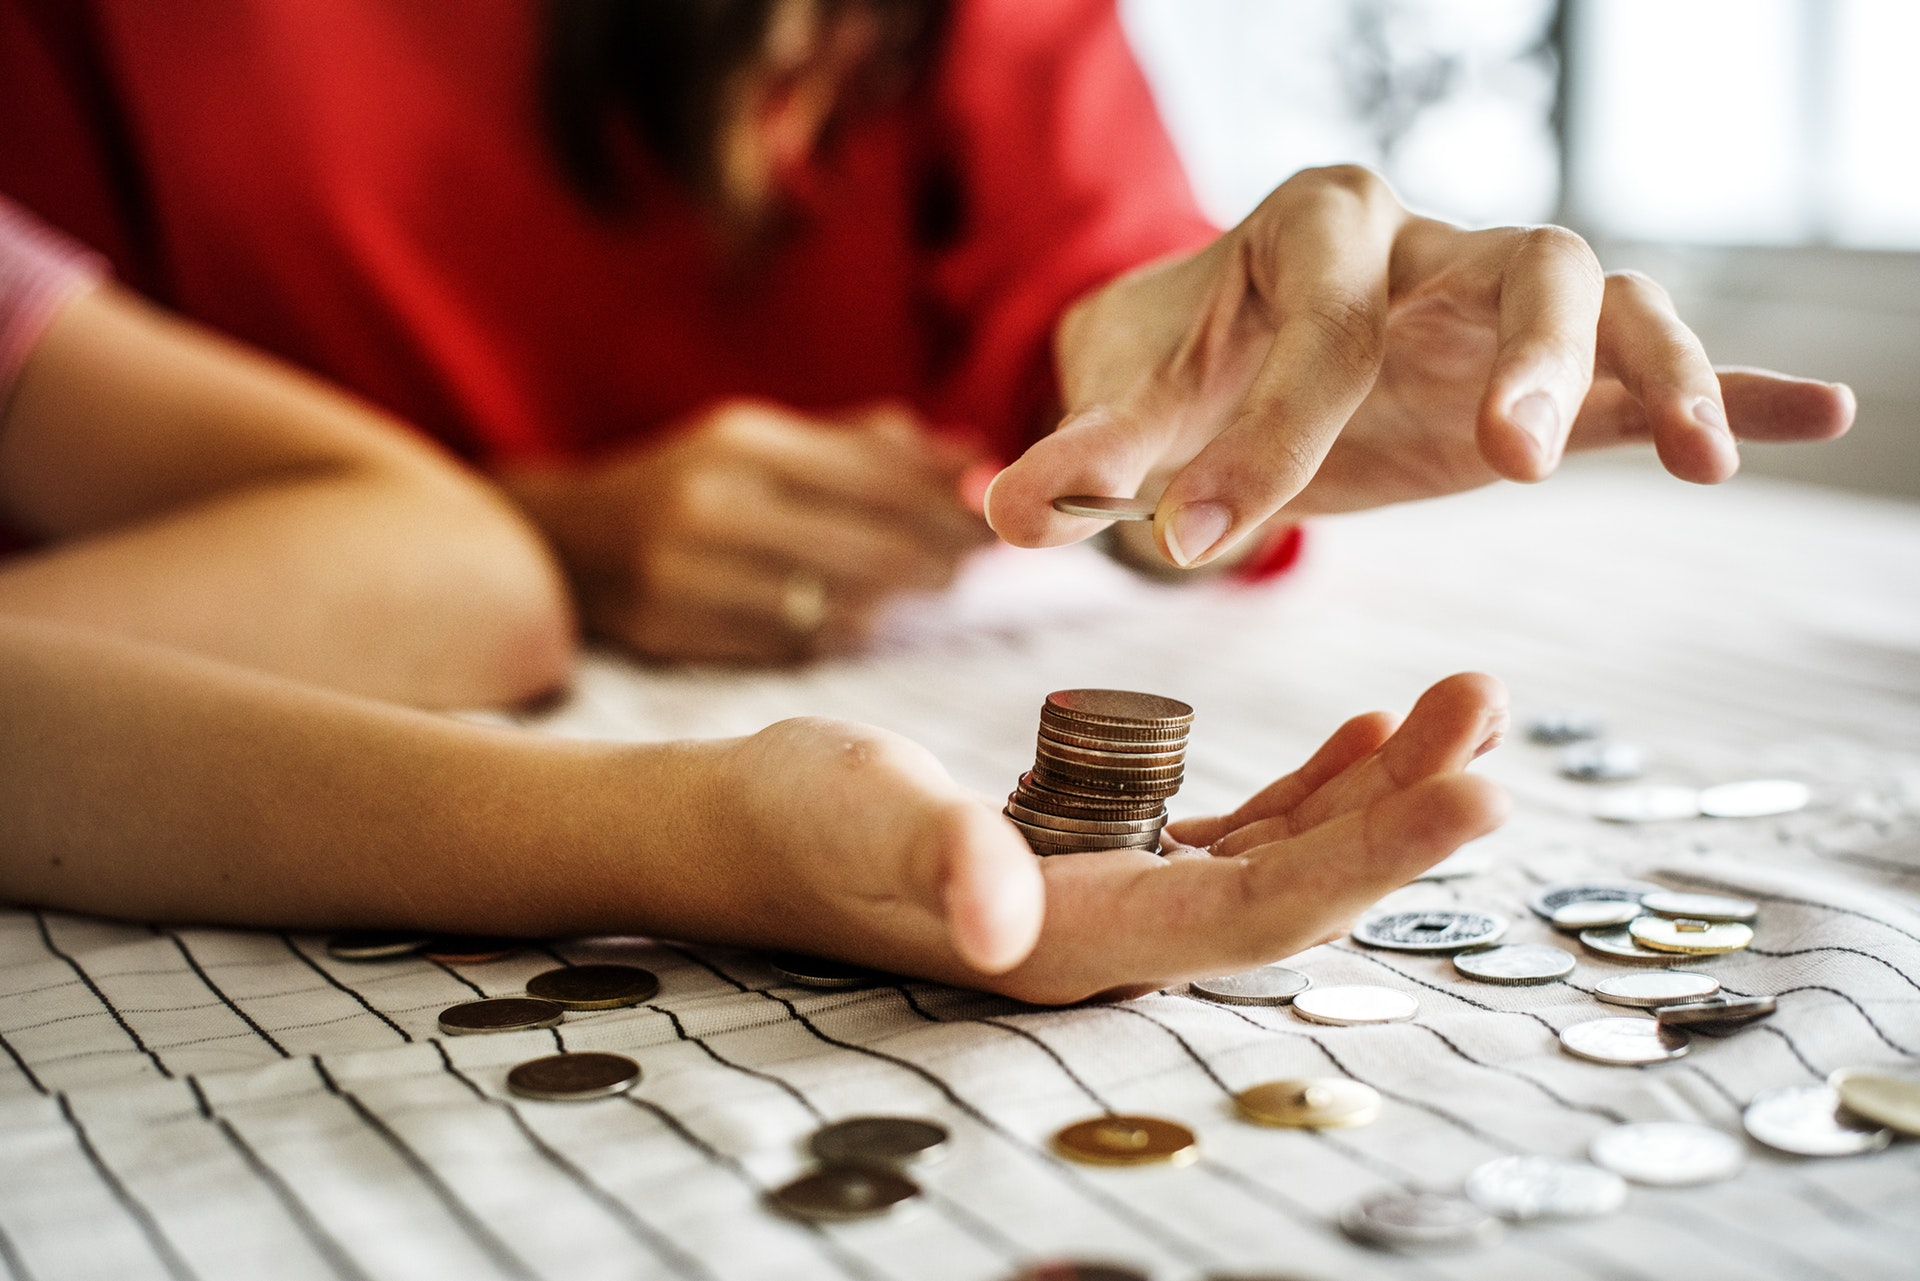 3 Sources of Financial Problems and Their Solutions